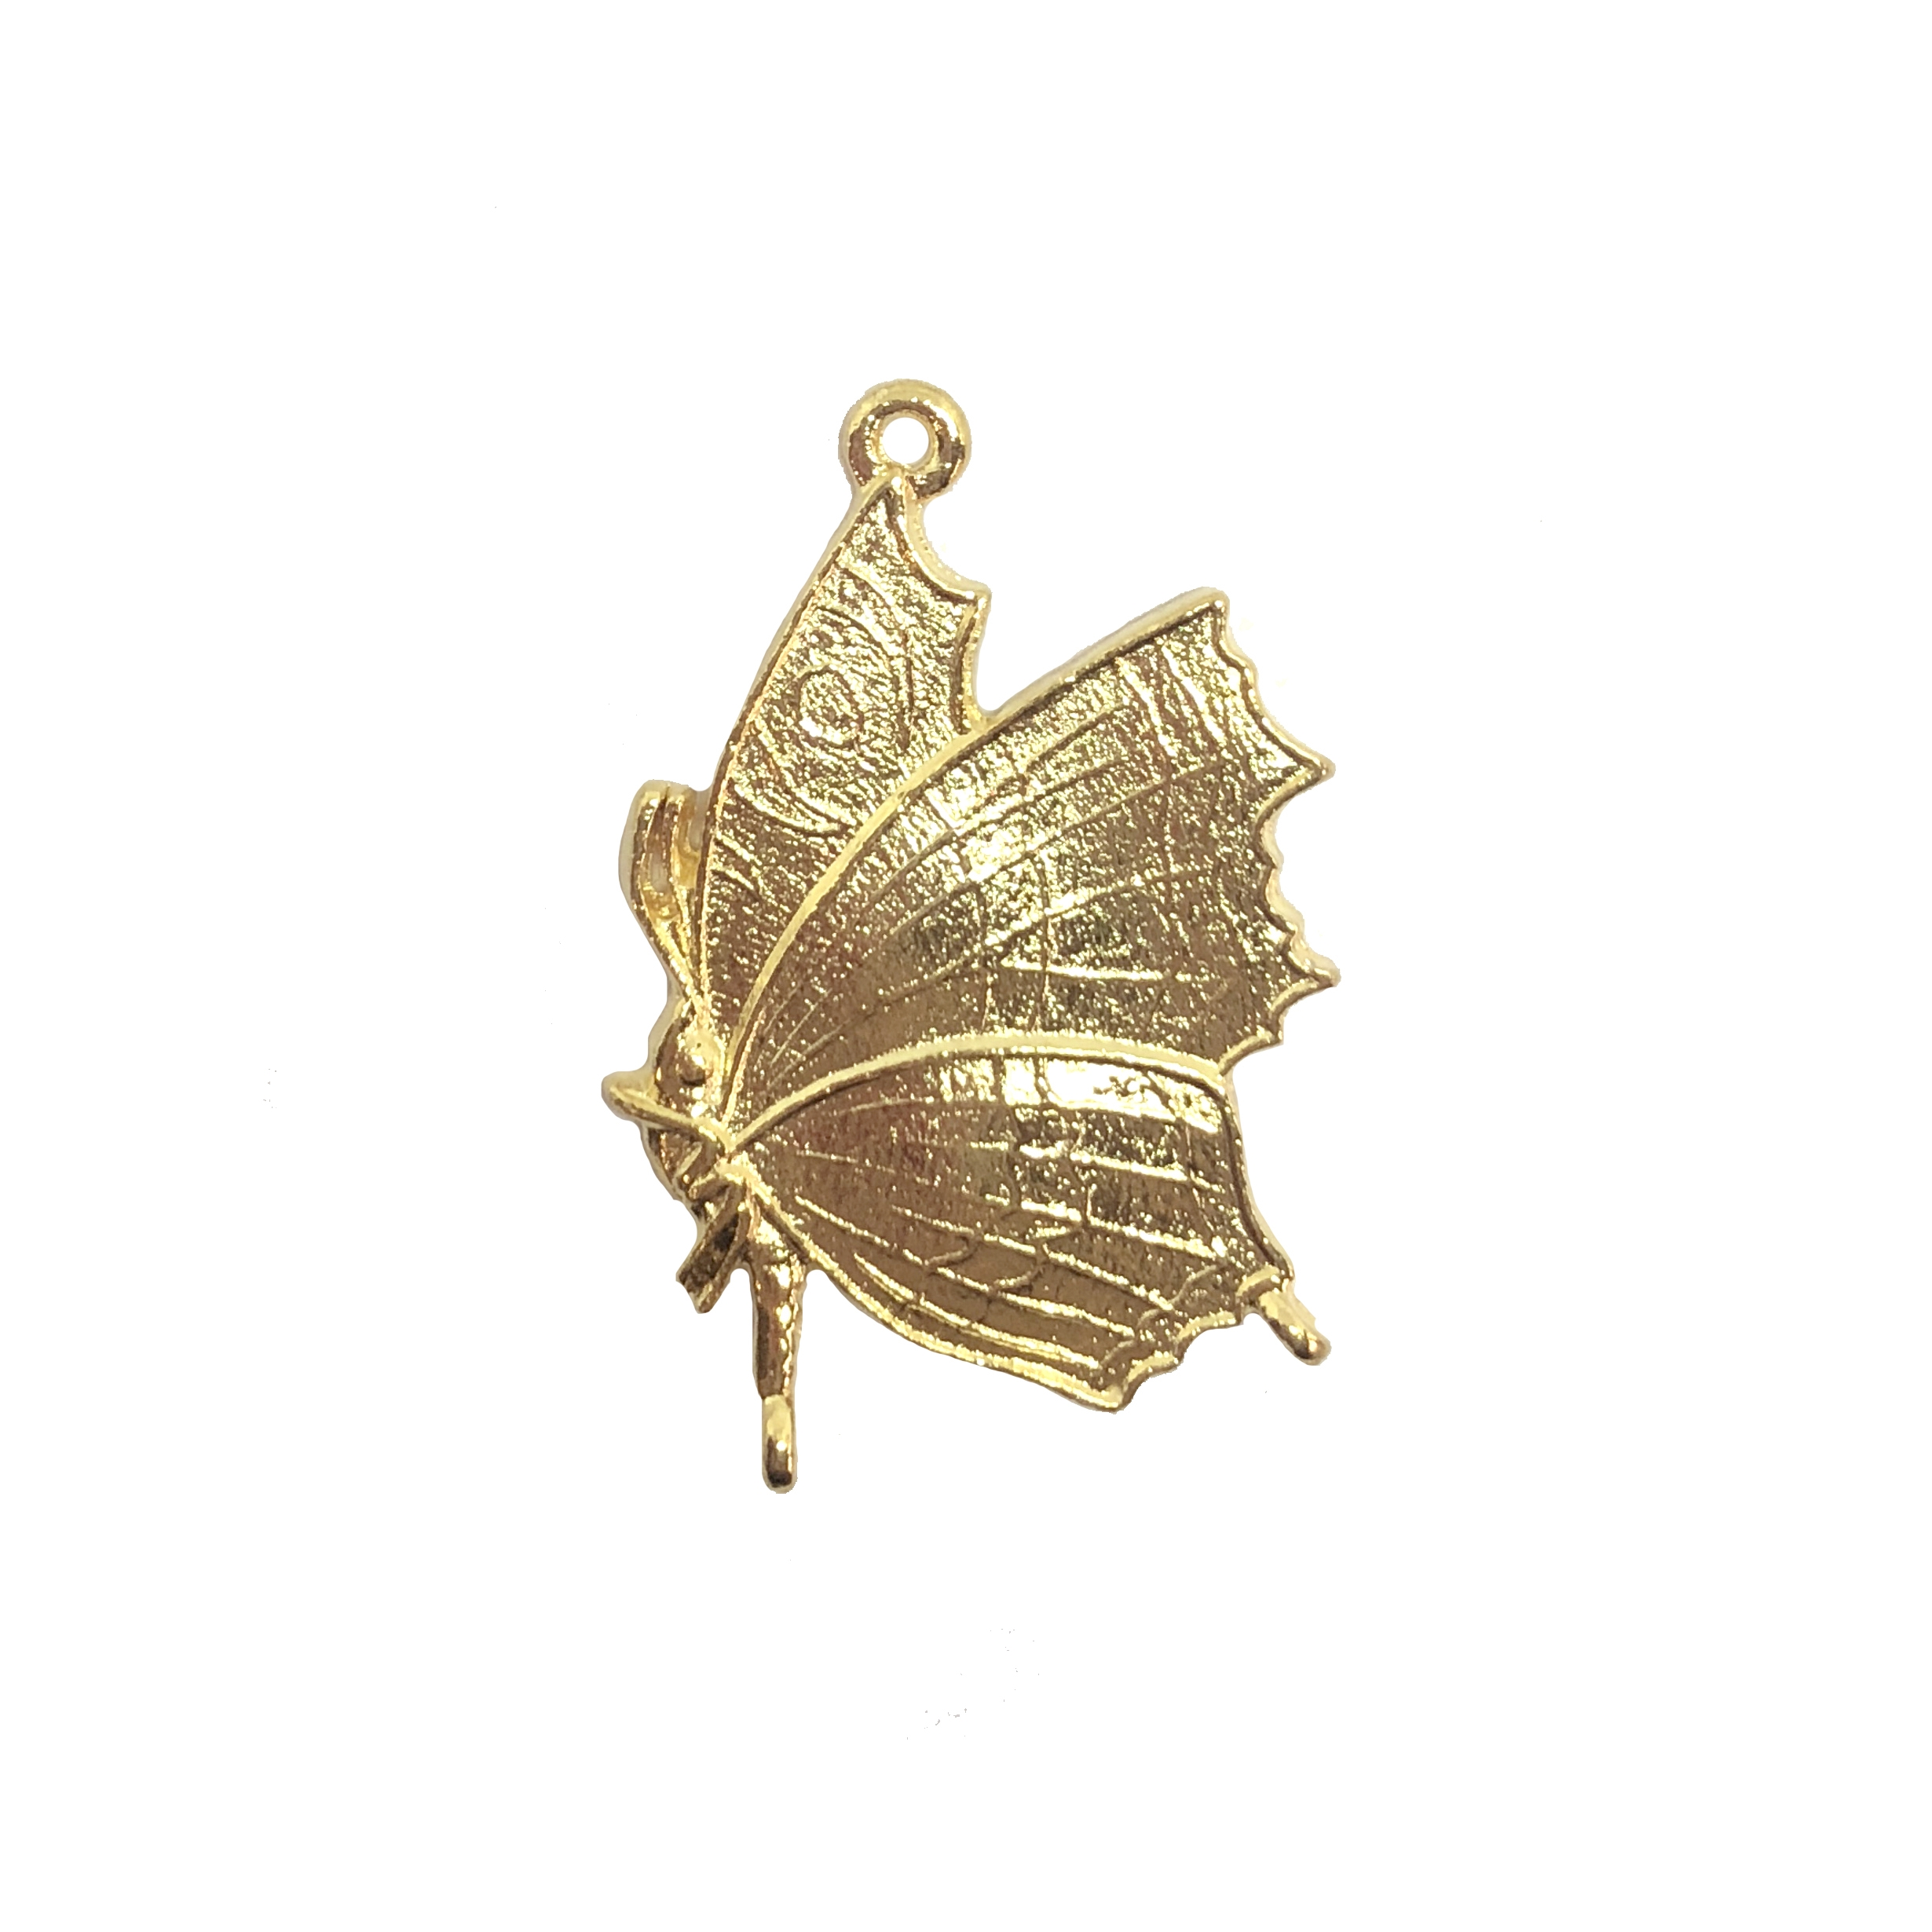 butterfly charm, butterfly, 22K gold finish, lead free pewter castings, B'sue by 1928, 1928 Company, designer jewelry findings, vintage jewelry parts, 1928 Jewelry, charm, B'sue Boutiques, vintage French findings, US made, pendant, charm, bug, 08544